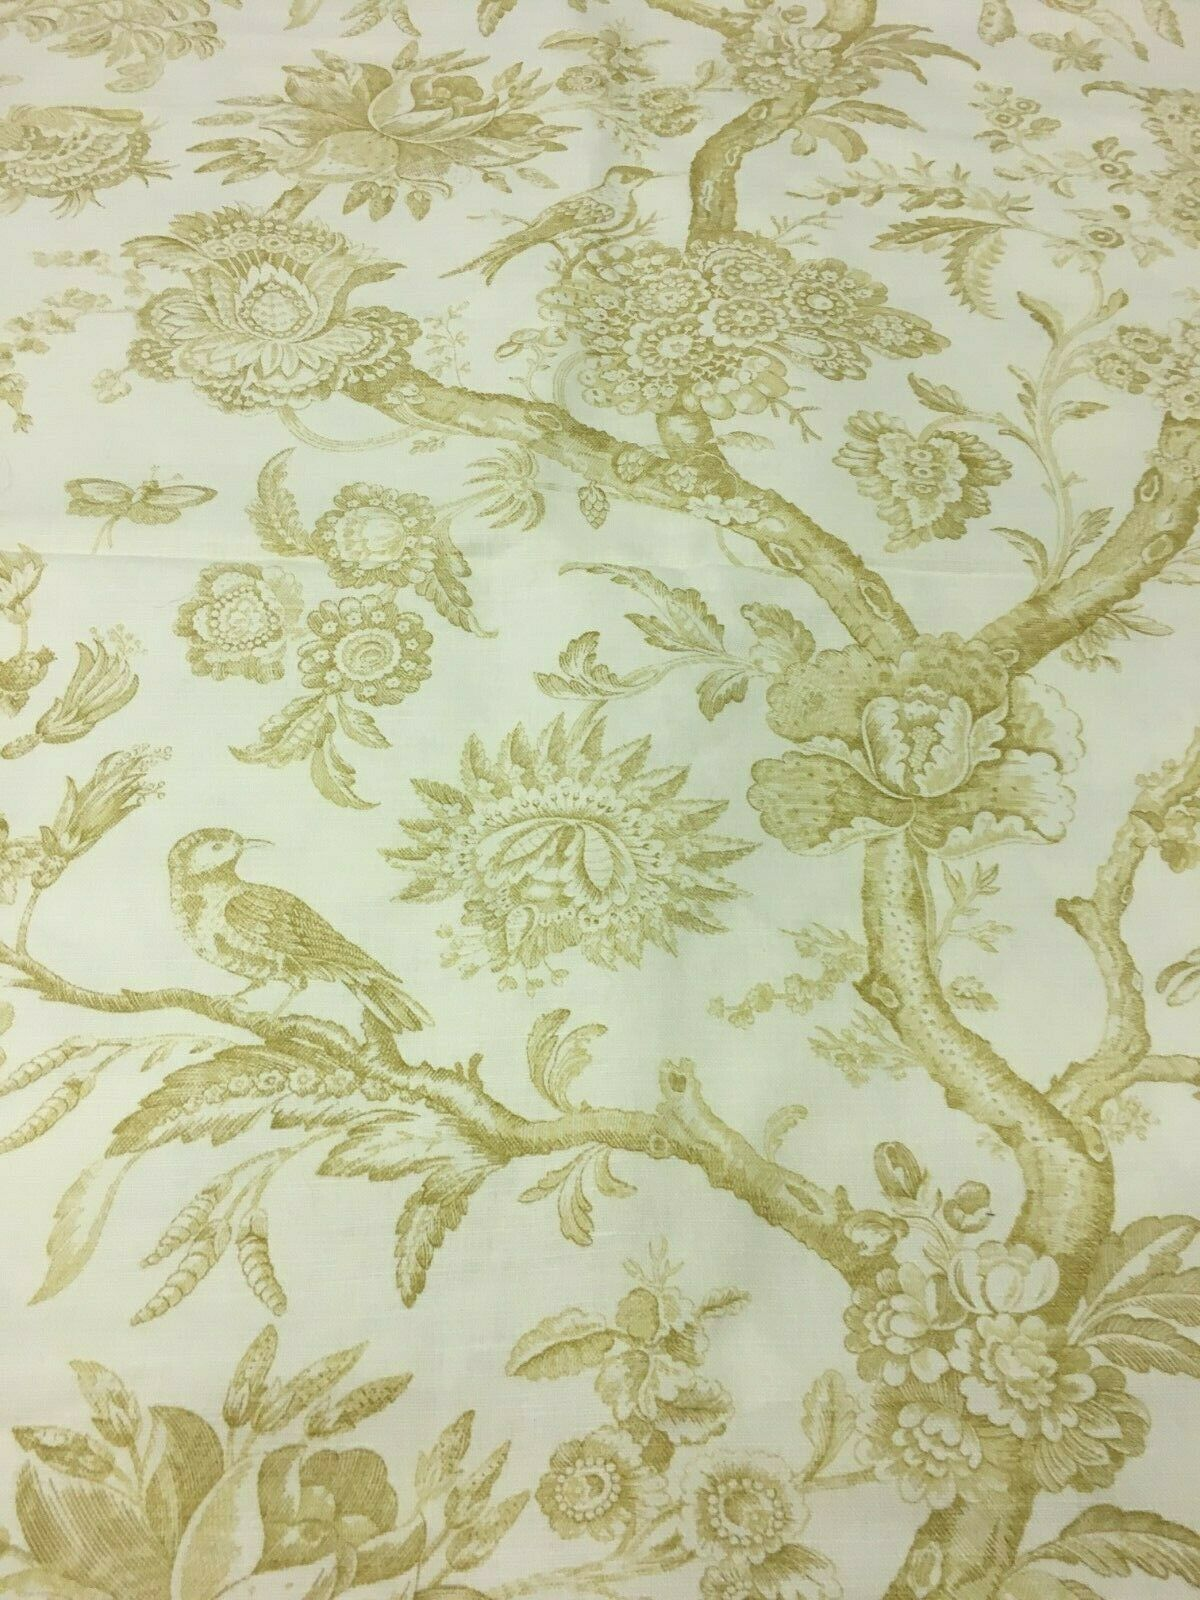 Stroheim & Romann Cream and Sand Toile with Birds Upholstery Drapery Fabric 7 yd